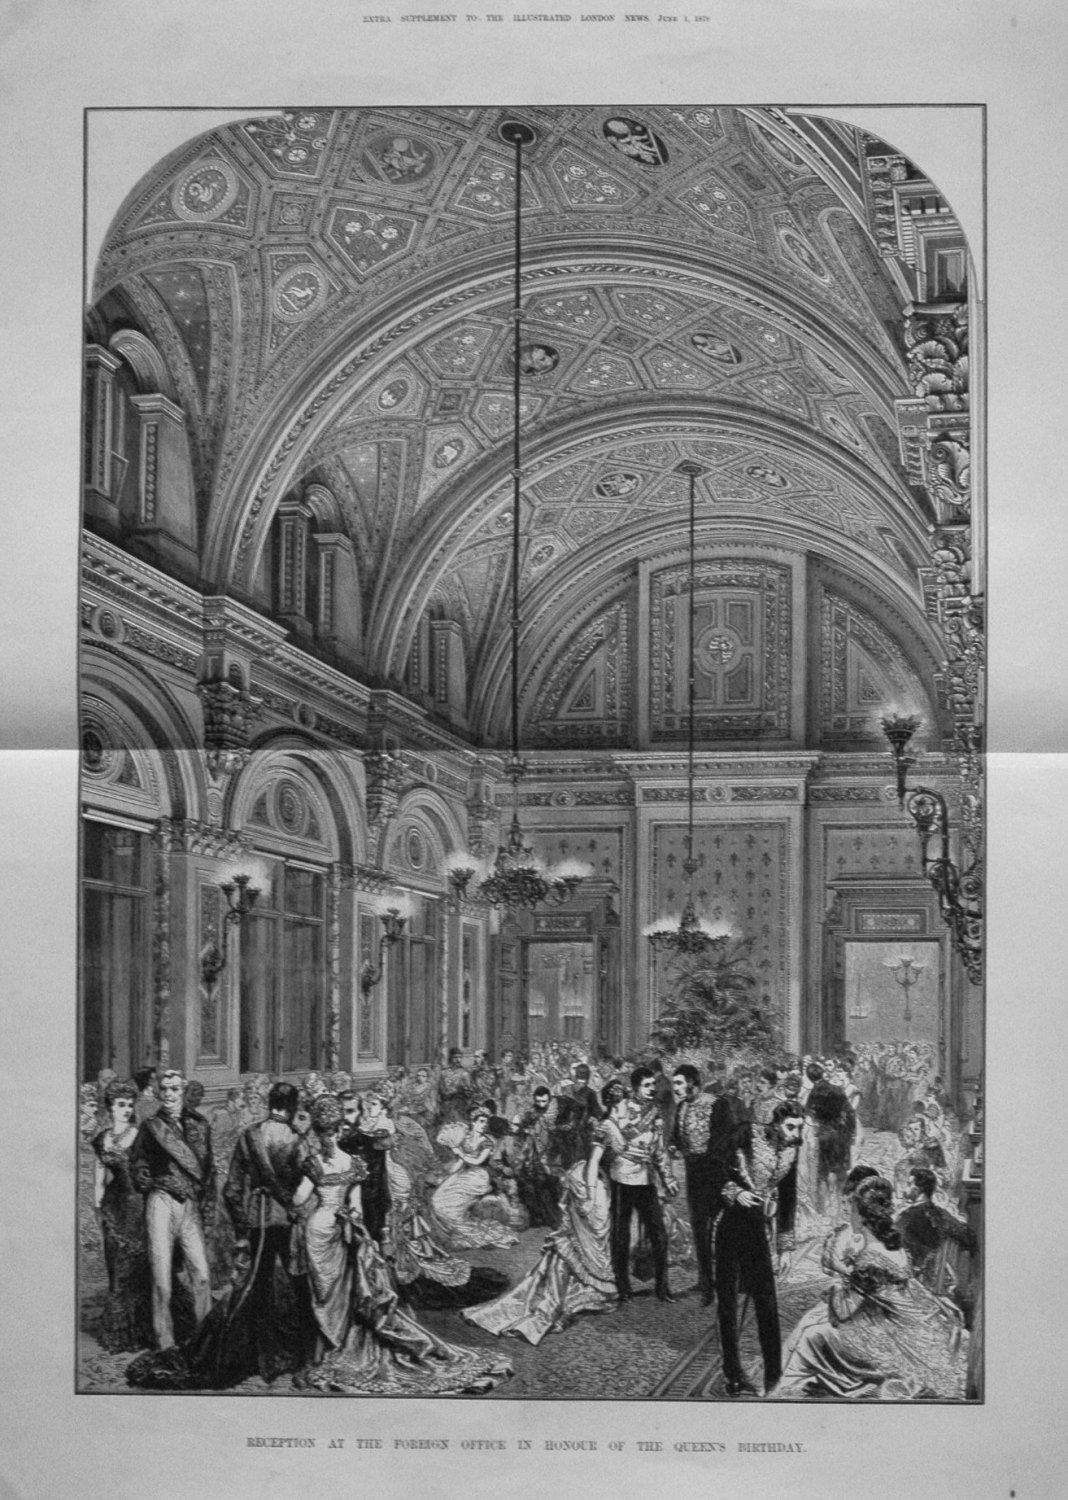 Reception at the Foreign Office in Honour of the Queen's Birthday. 1878